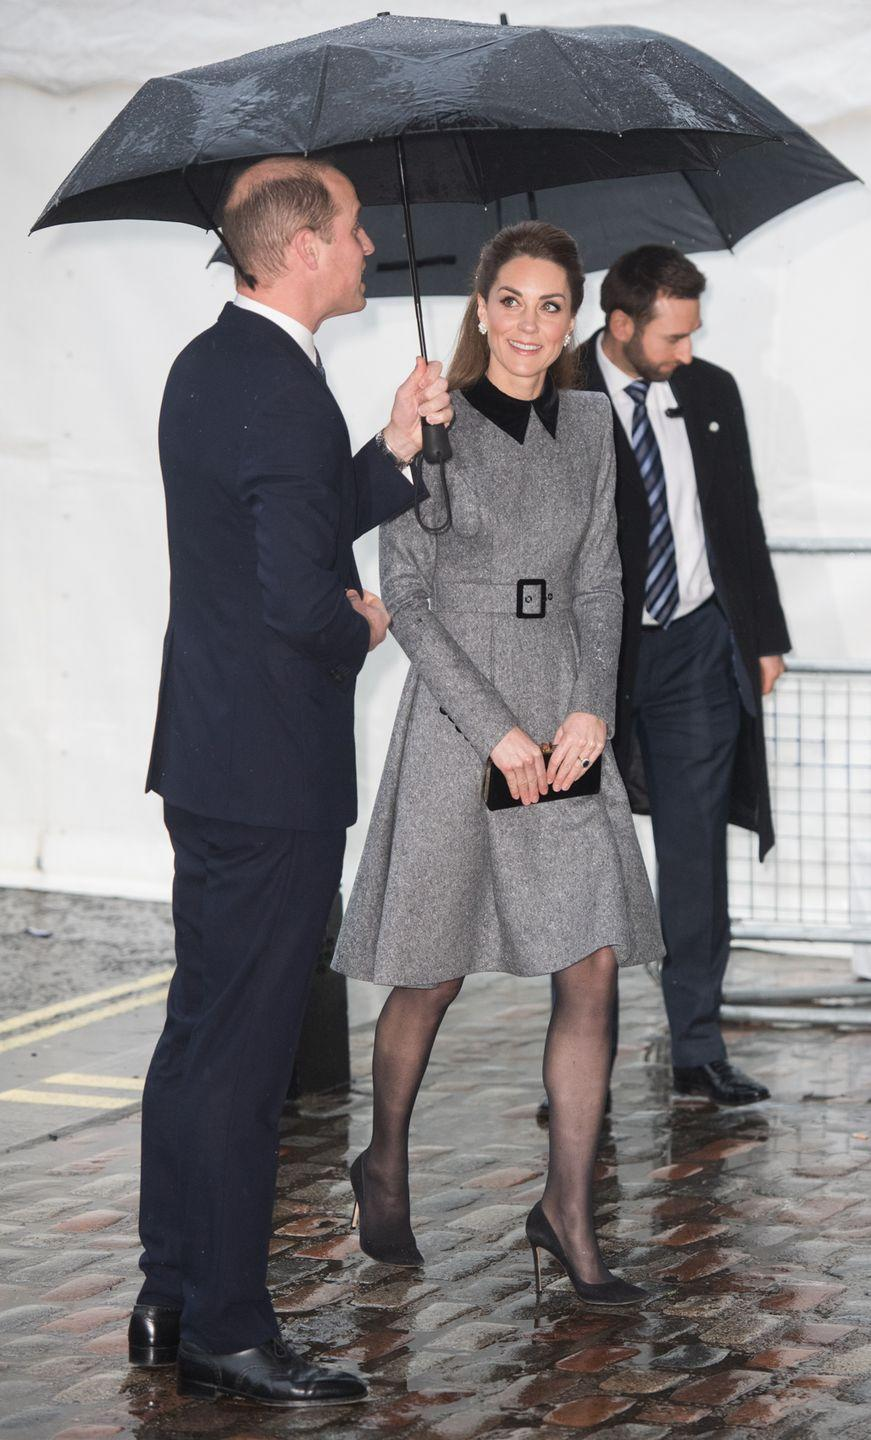 <p>The Duchess of Cambridge attends the UK Holocaust Memorial Day Commemorative Ceremony in Westminster. She wore a gray coat dress by Catherine Walker. </p>